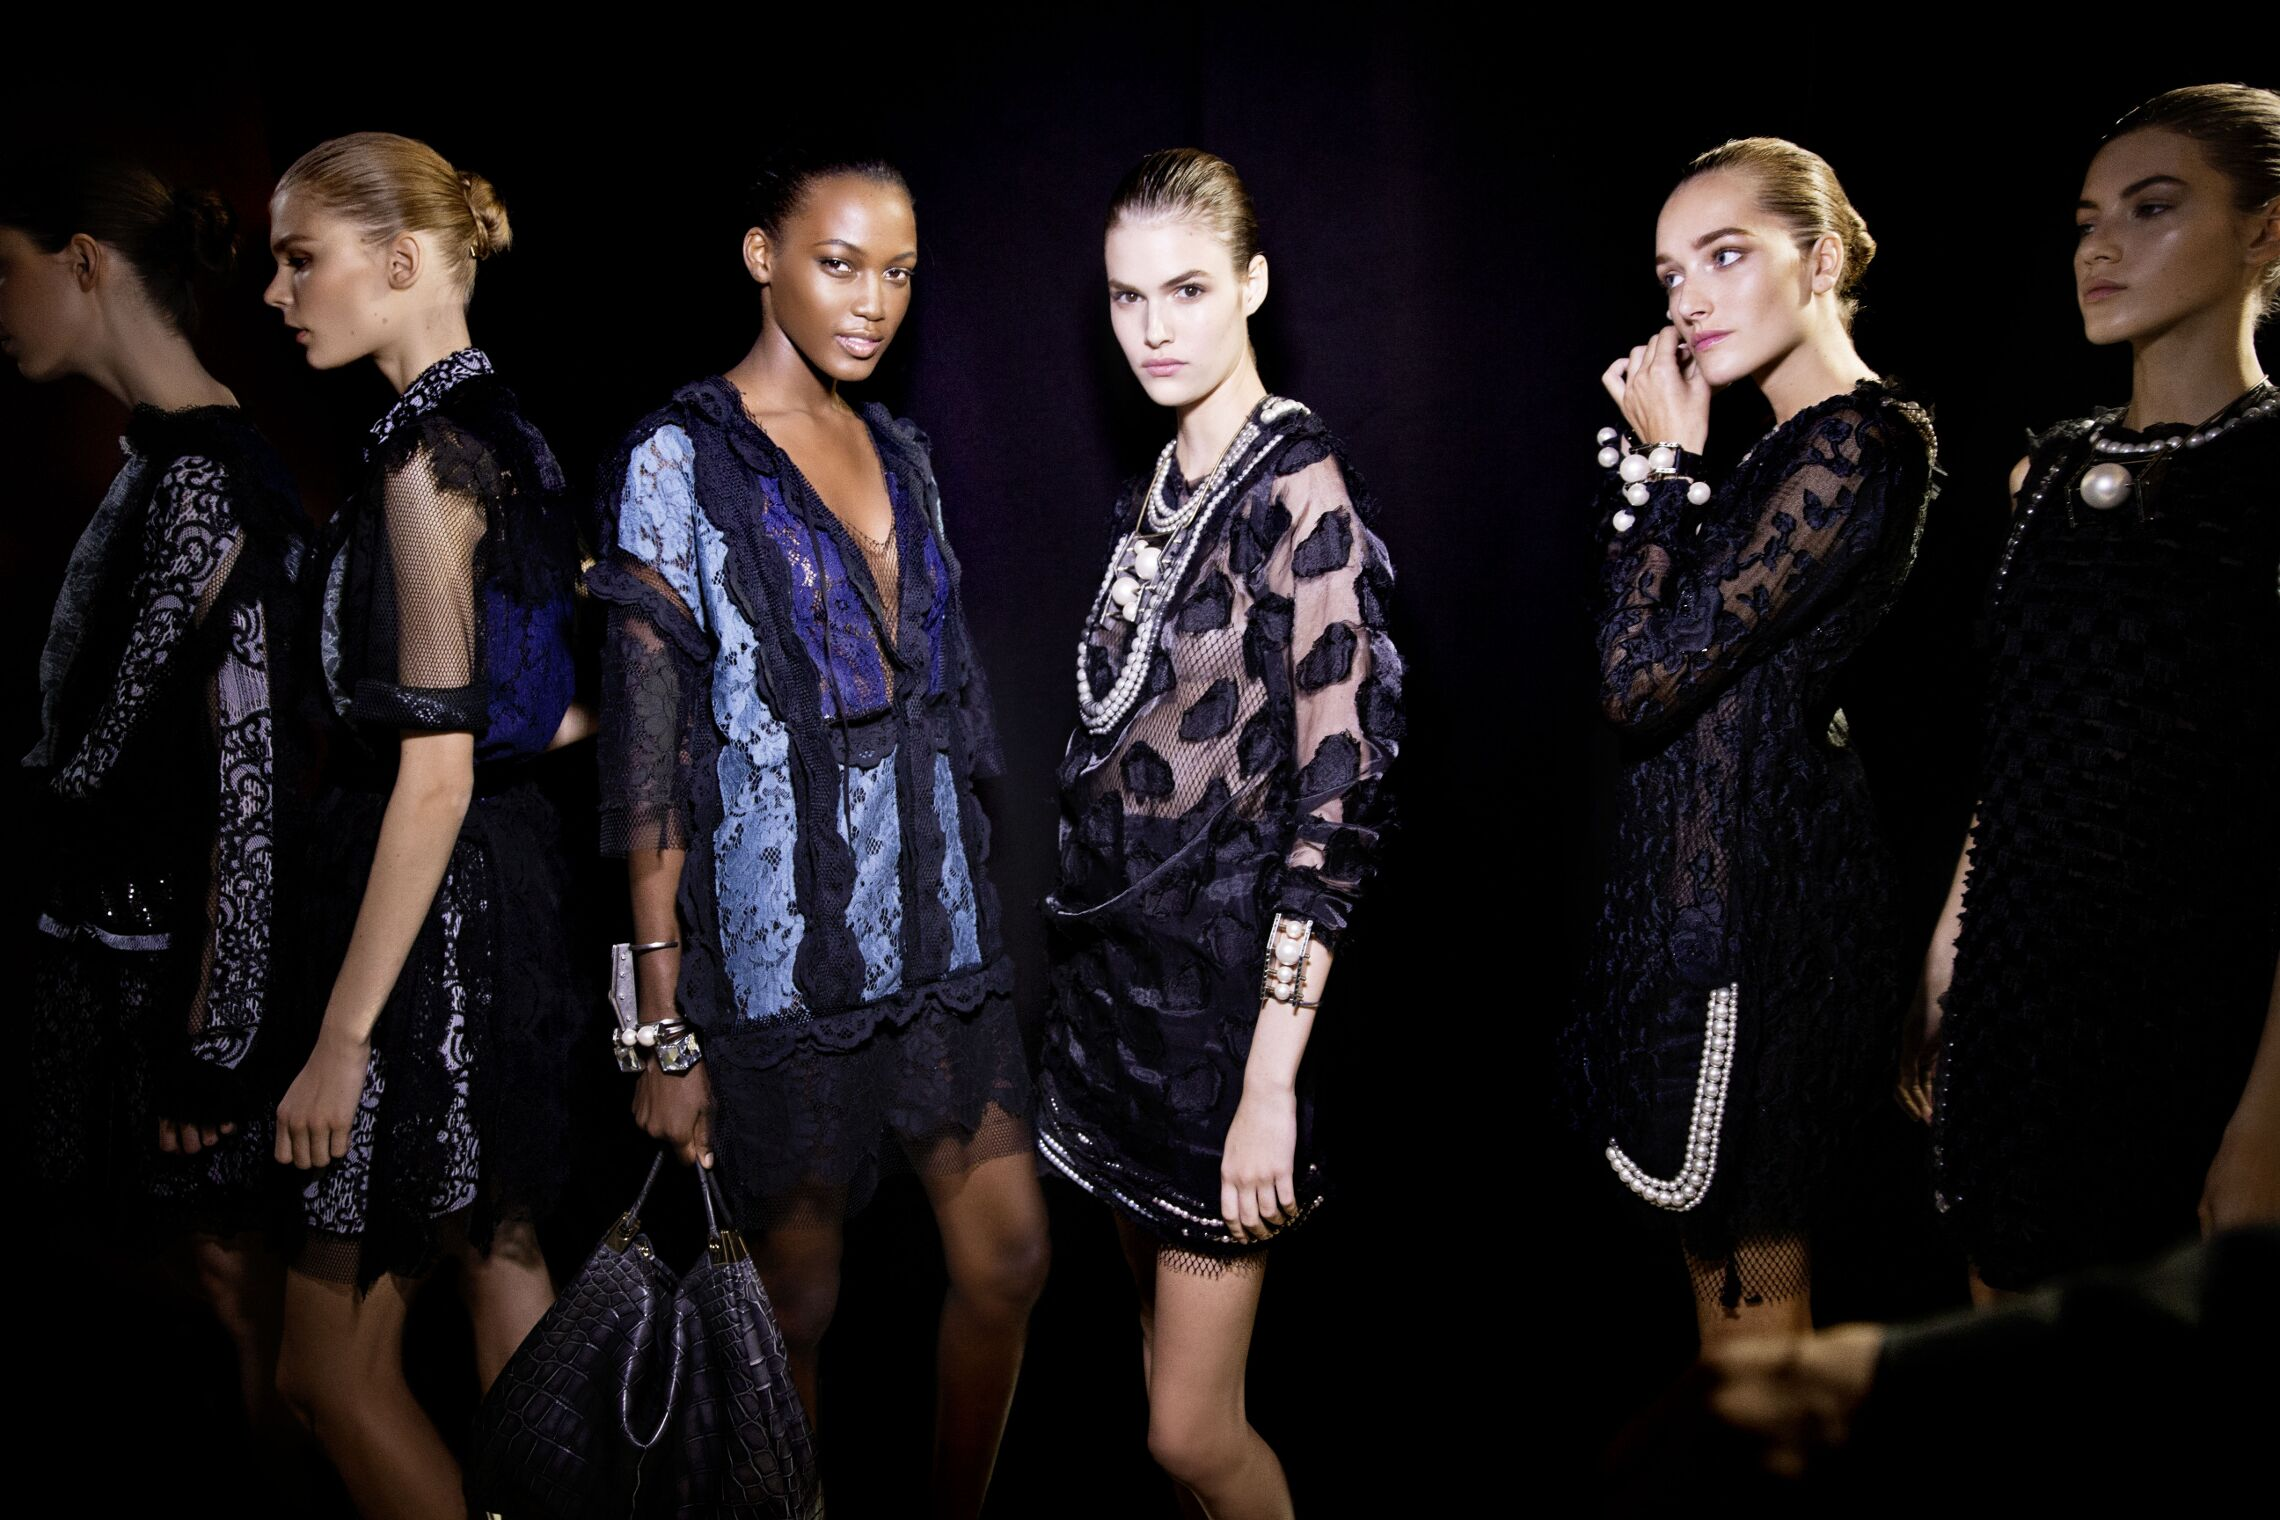 Lanvin backstage at Milan Spring Summer 2015 women's ready-to-wear collections.